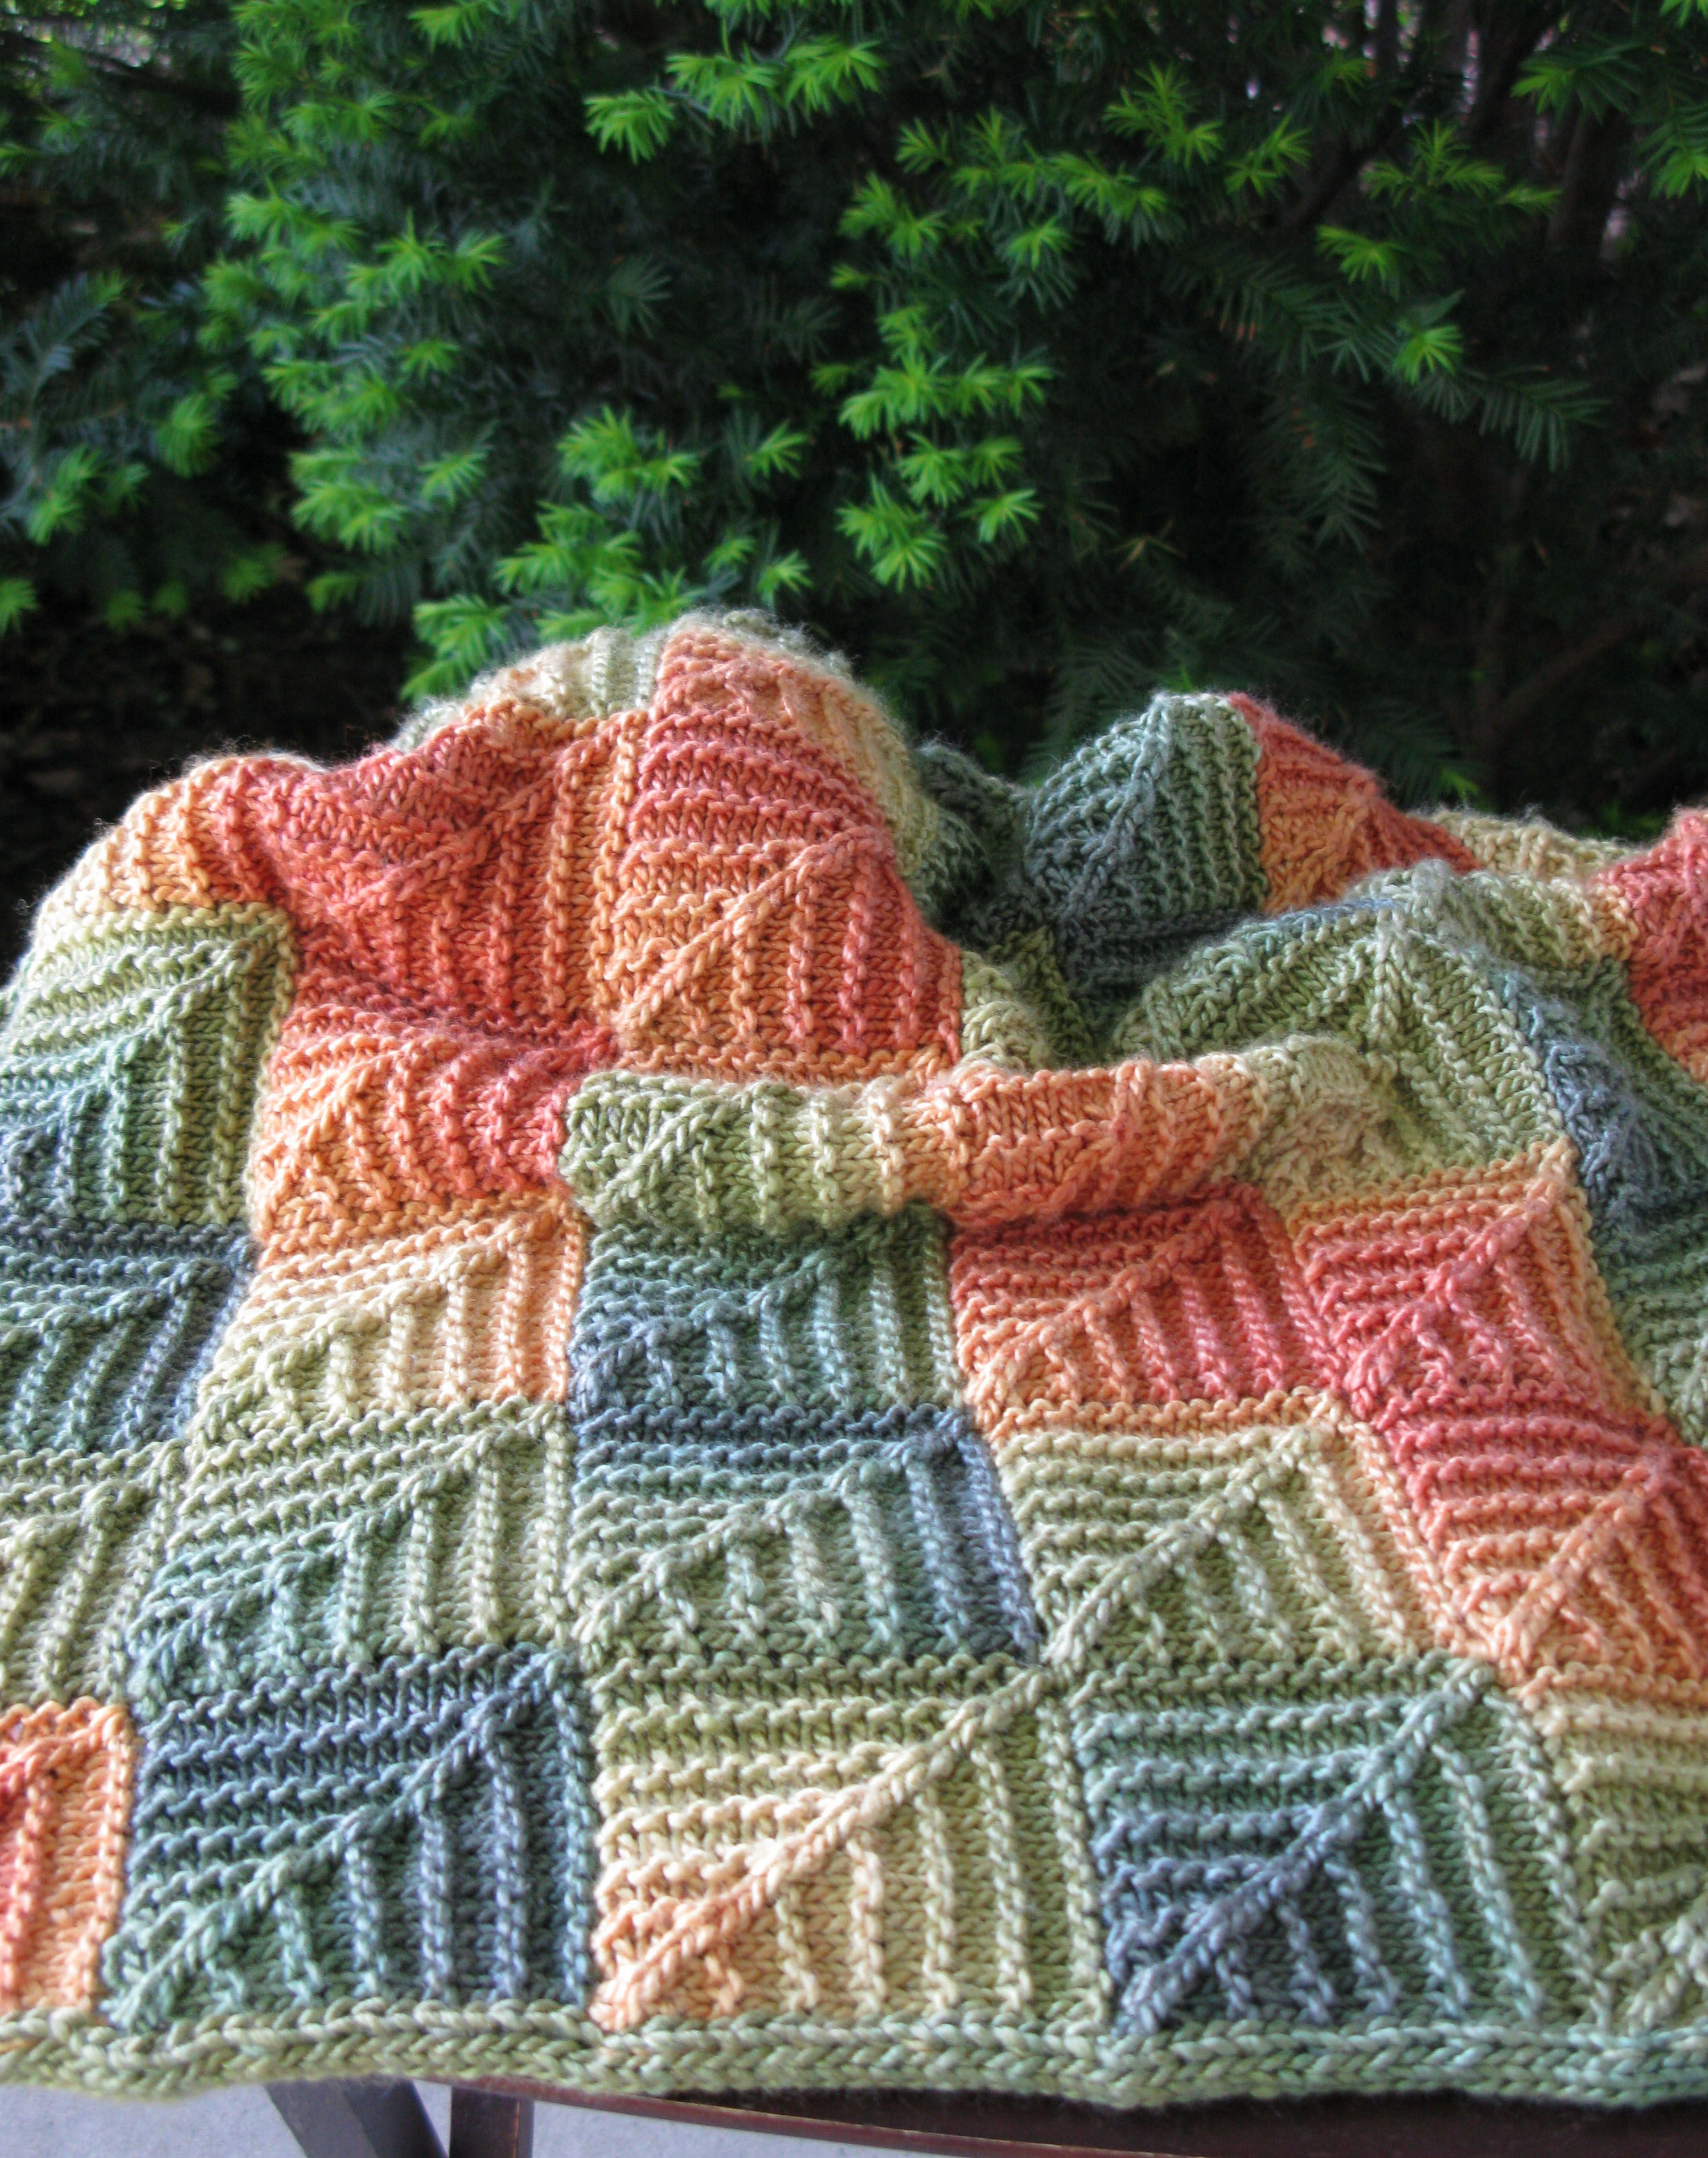 Catnip New Border 1 | Knitting | Pinterest | Decken, Stricken und ...